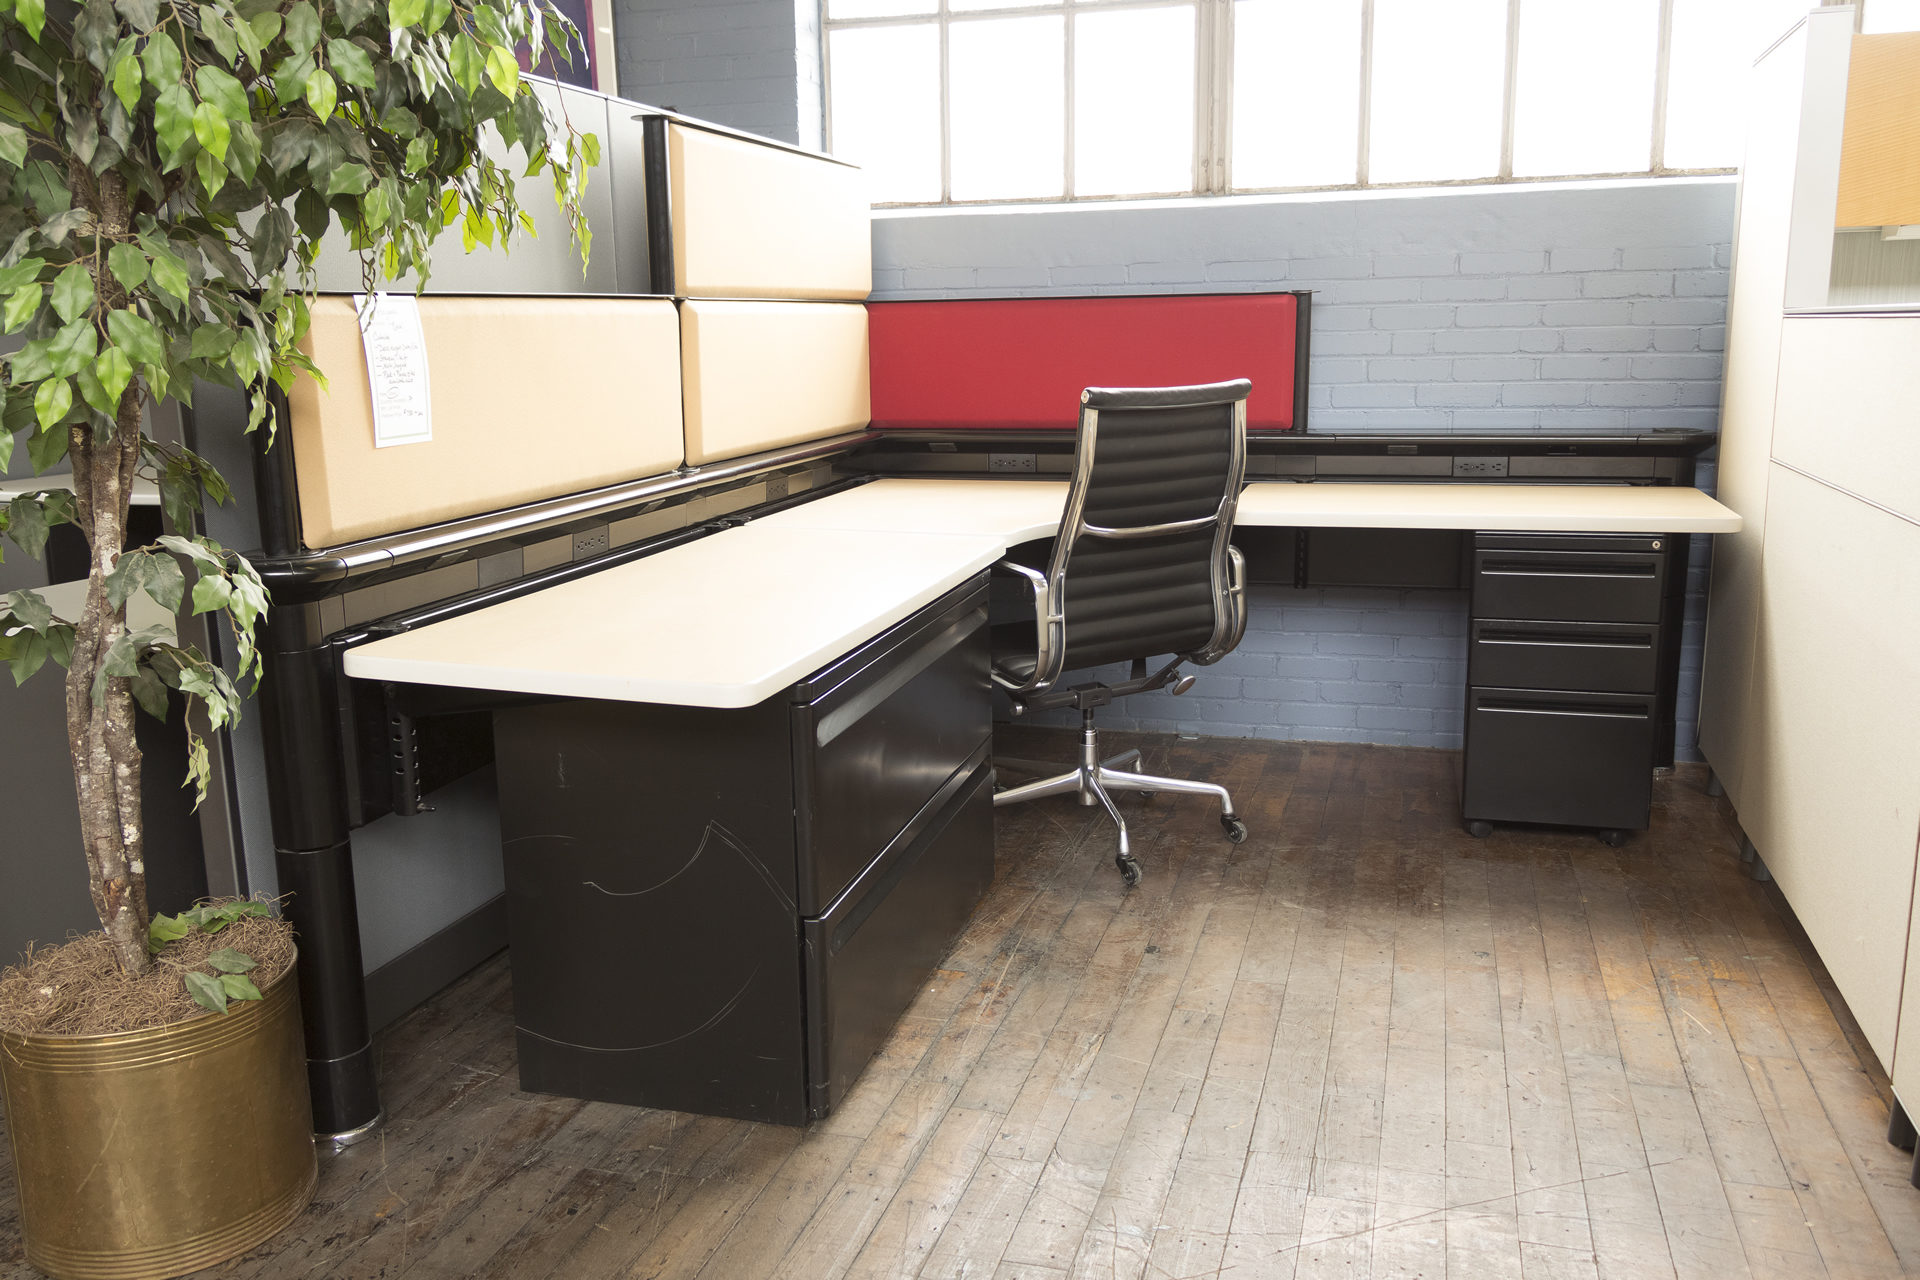 peartreeofficefurniture_peartreeofficefurniture_mg_3587.jpg